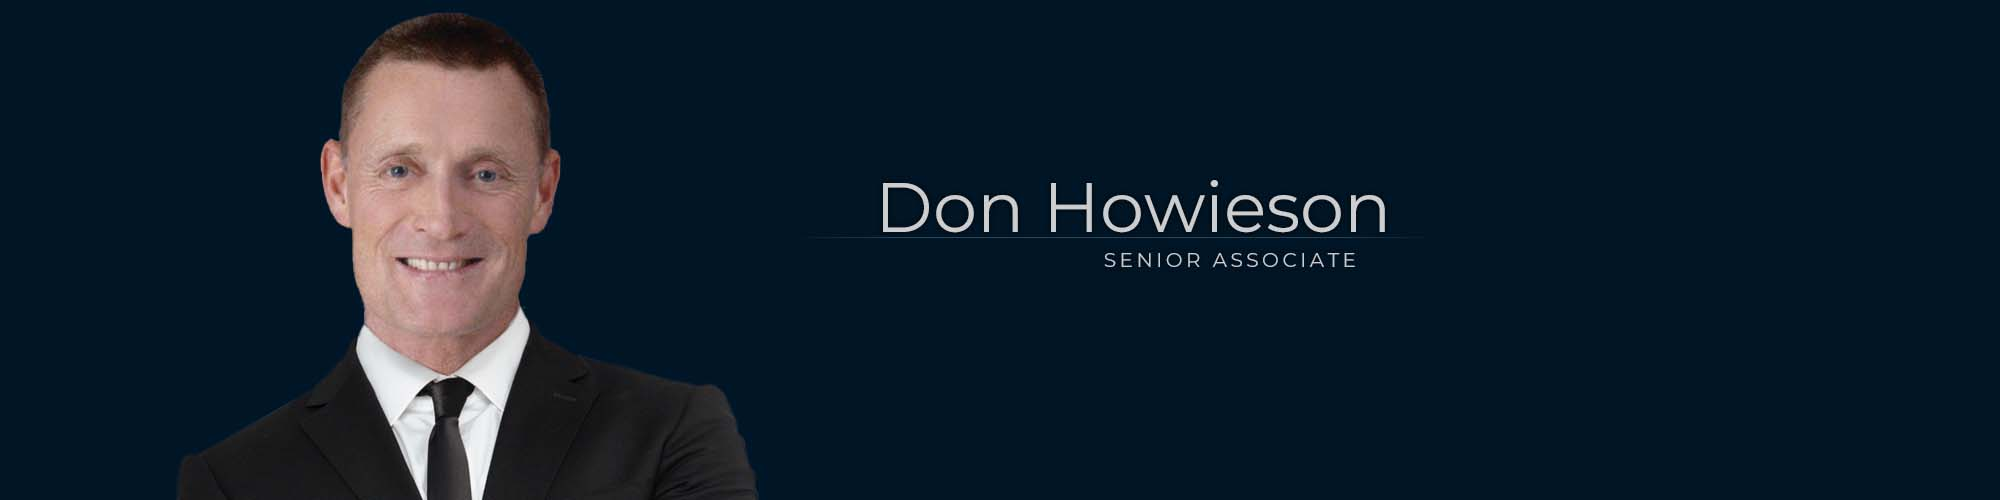 Don Howieson, Senior Associate at Dominion GovLaw LLP